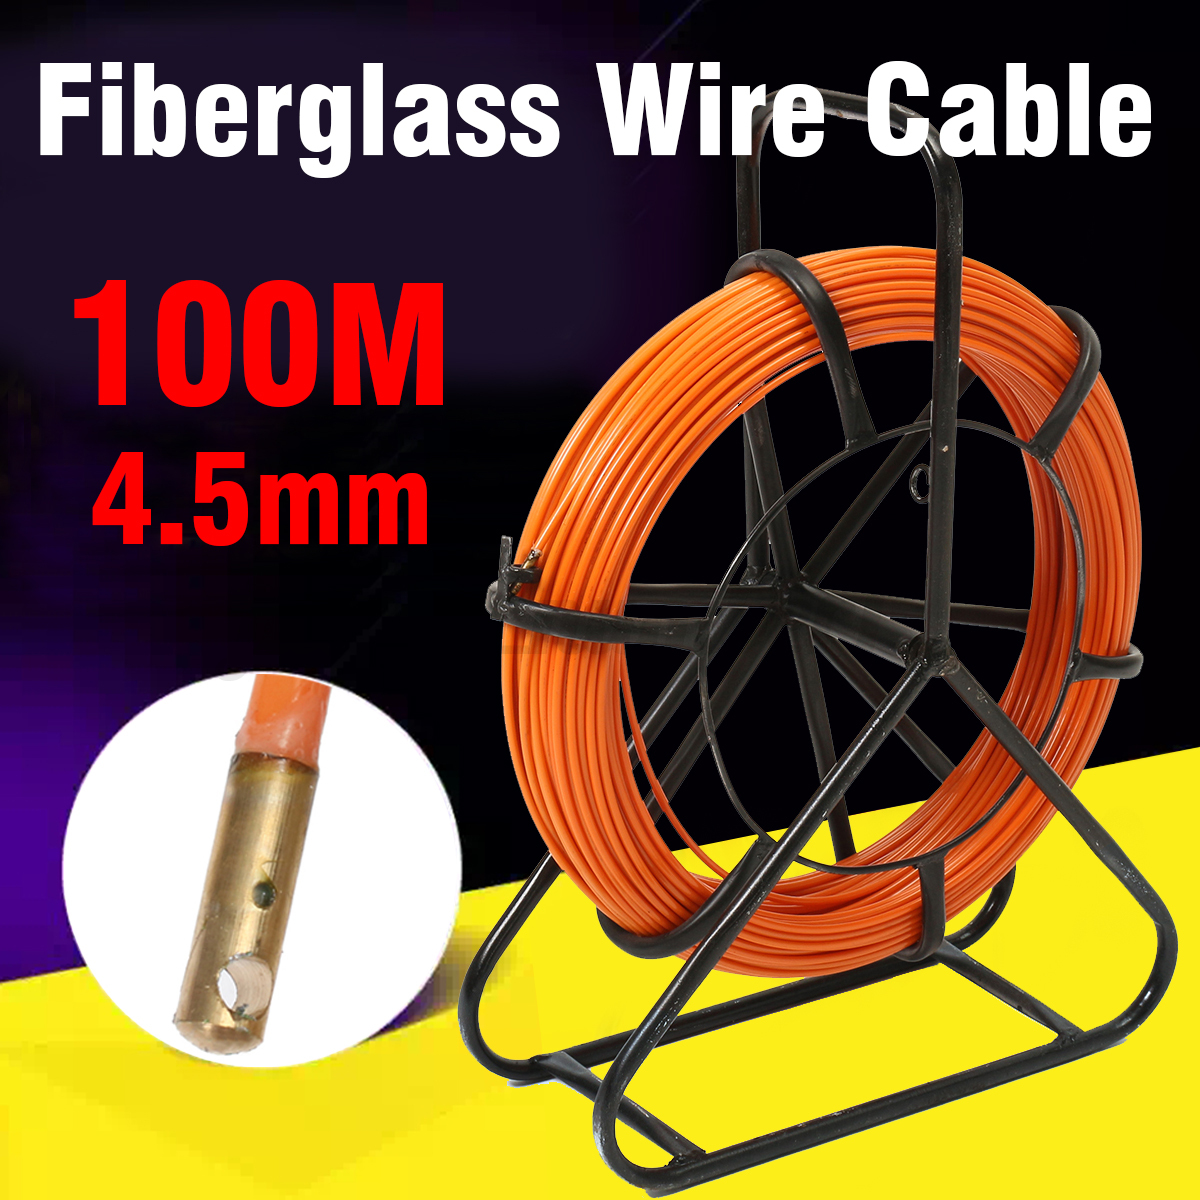 150m Fiberglass Duct Rodder Fish Tape Cable Running Rod Wire Puller Wiring